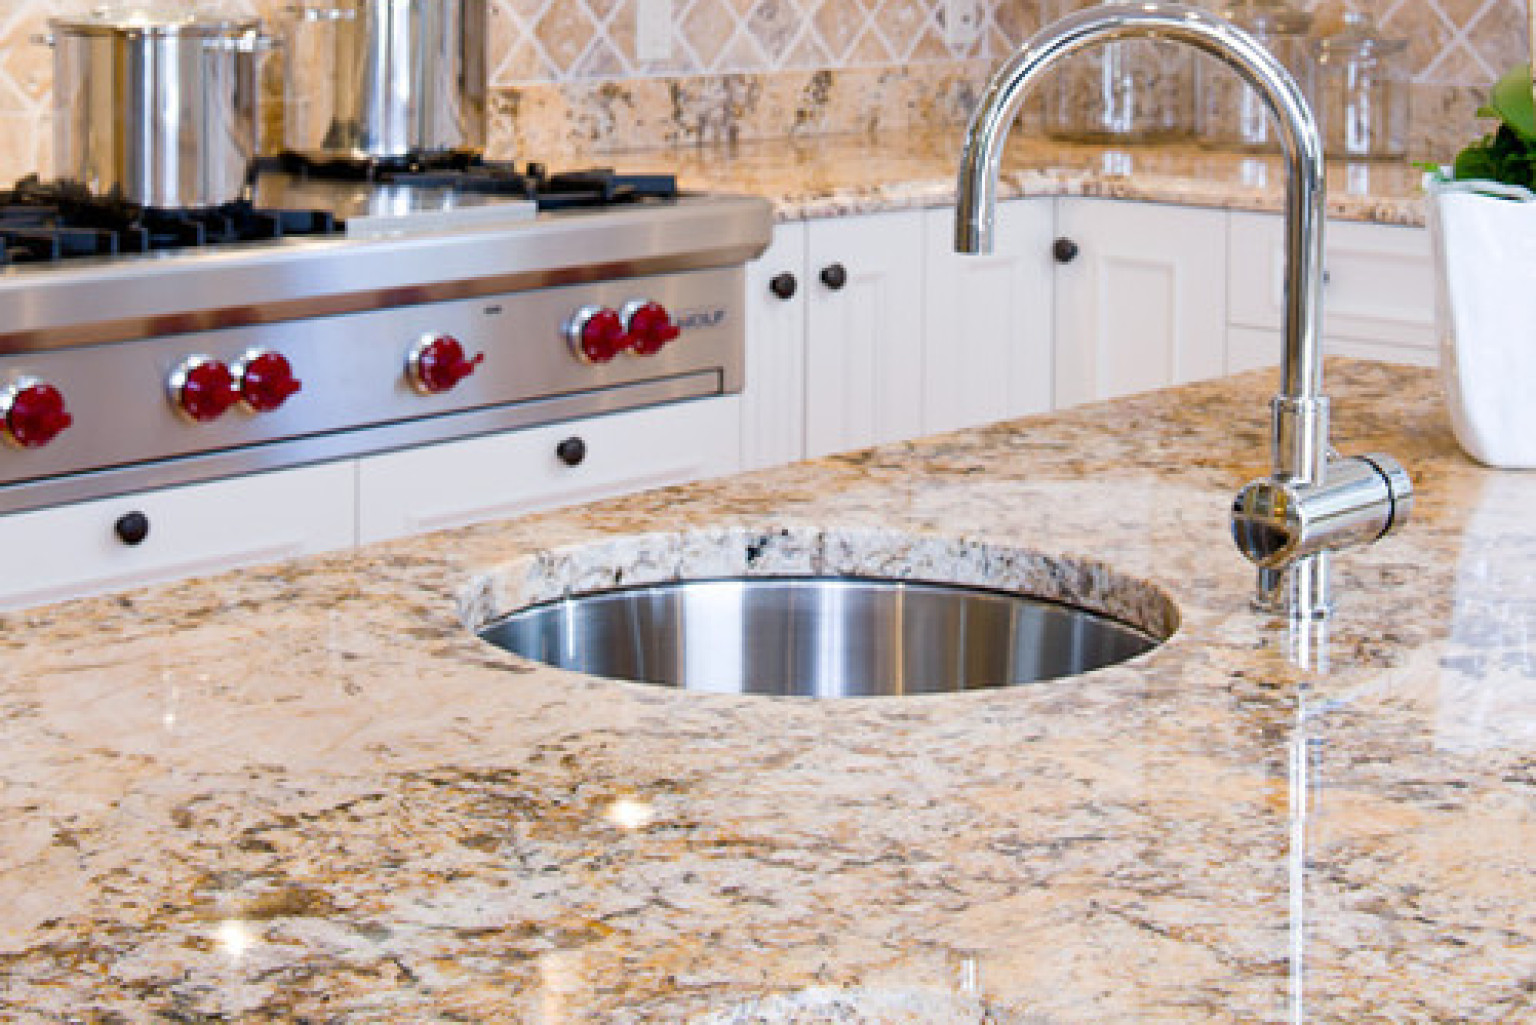 Kitchen Countertops Buying Guide: The Ins And Outs Of The Best Options On  The Market (PHOTOS) | HuffPost